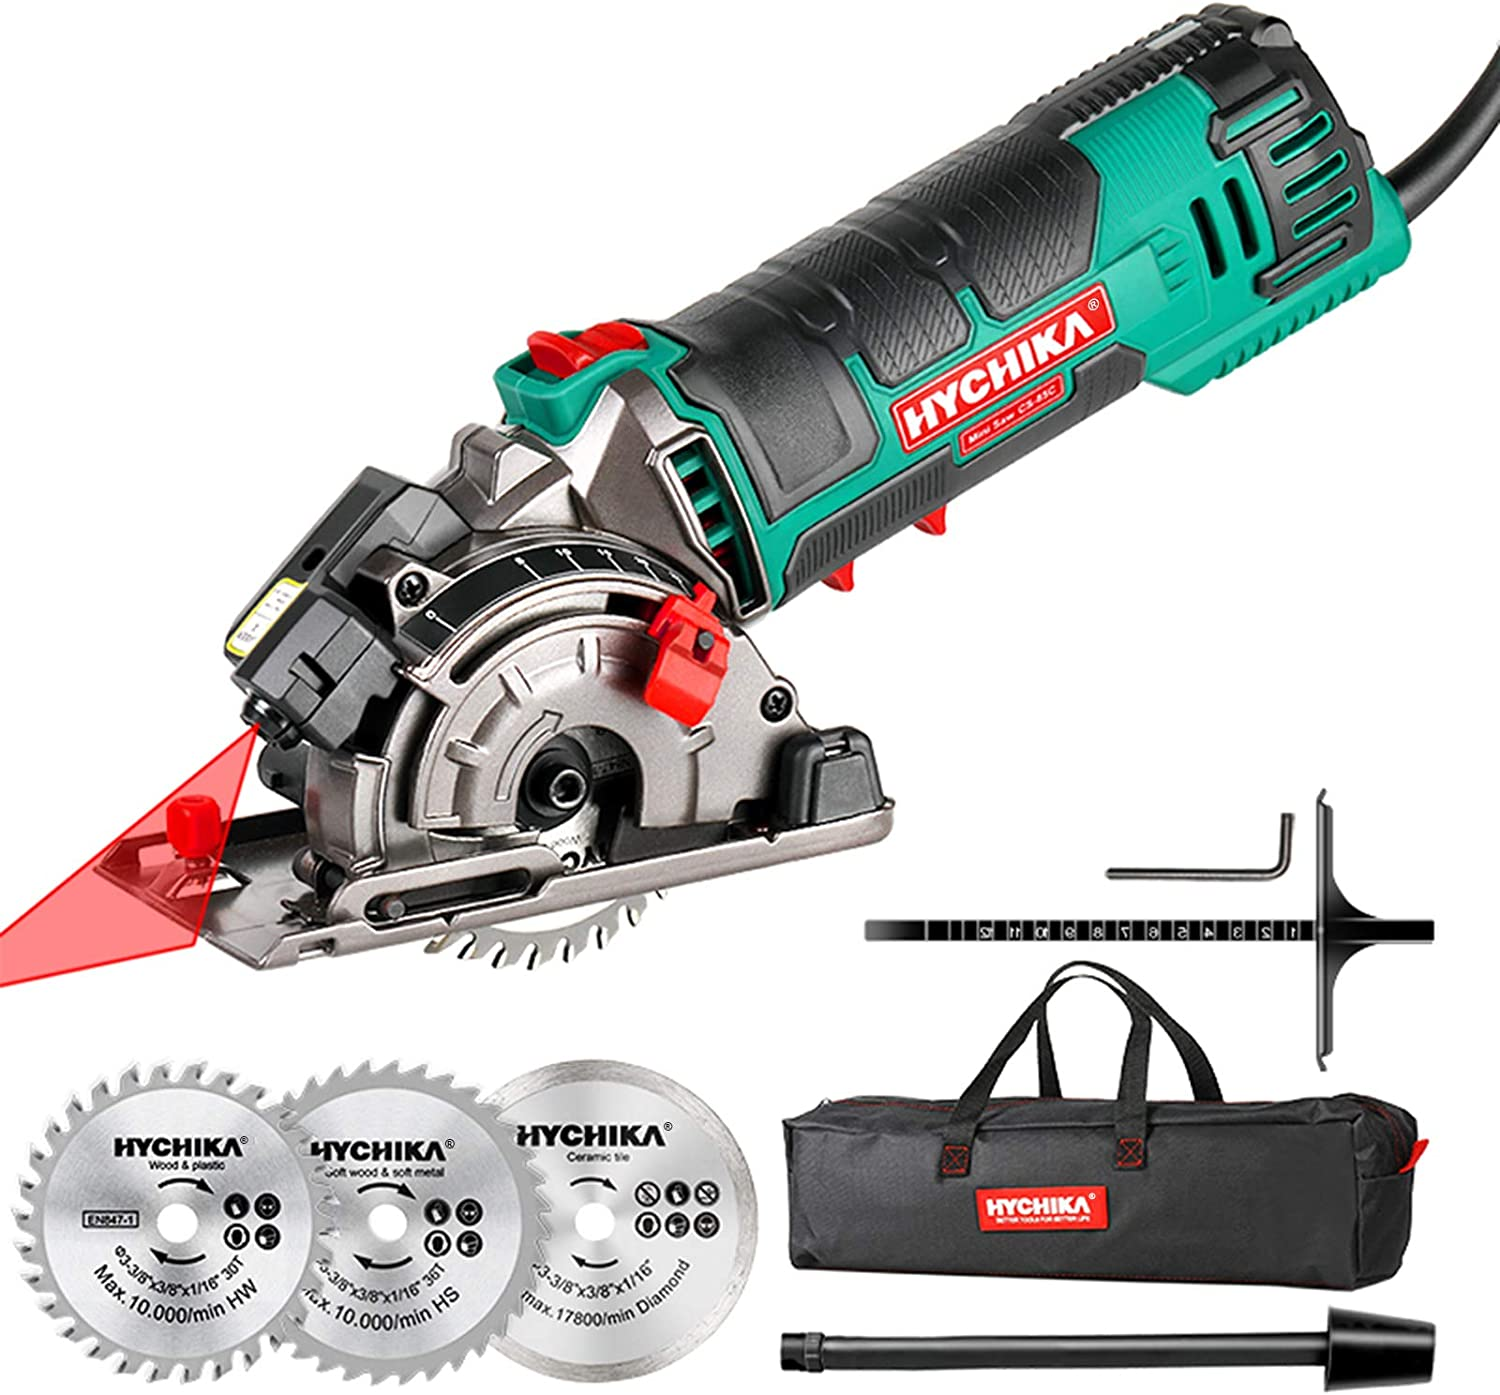 """Mini Circular Saw, HYCHIKA Compact Circular Saw Tile Saw with 3 Saw Blades 4A Pure Copper Motor, 3-3/8""""4500RPM Ideal for Wood, Soft Metal, Tile and..."""